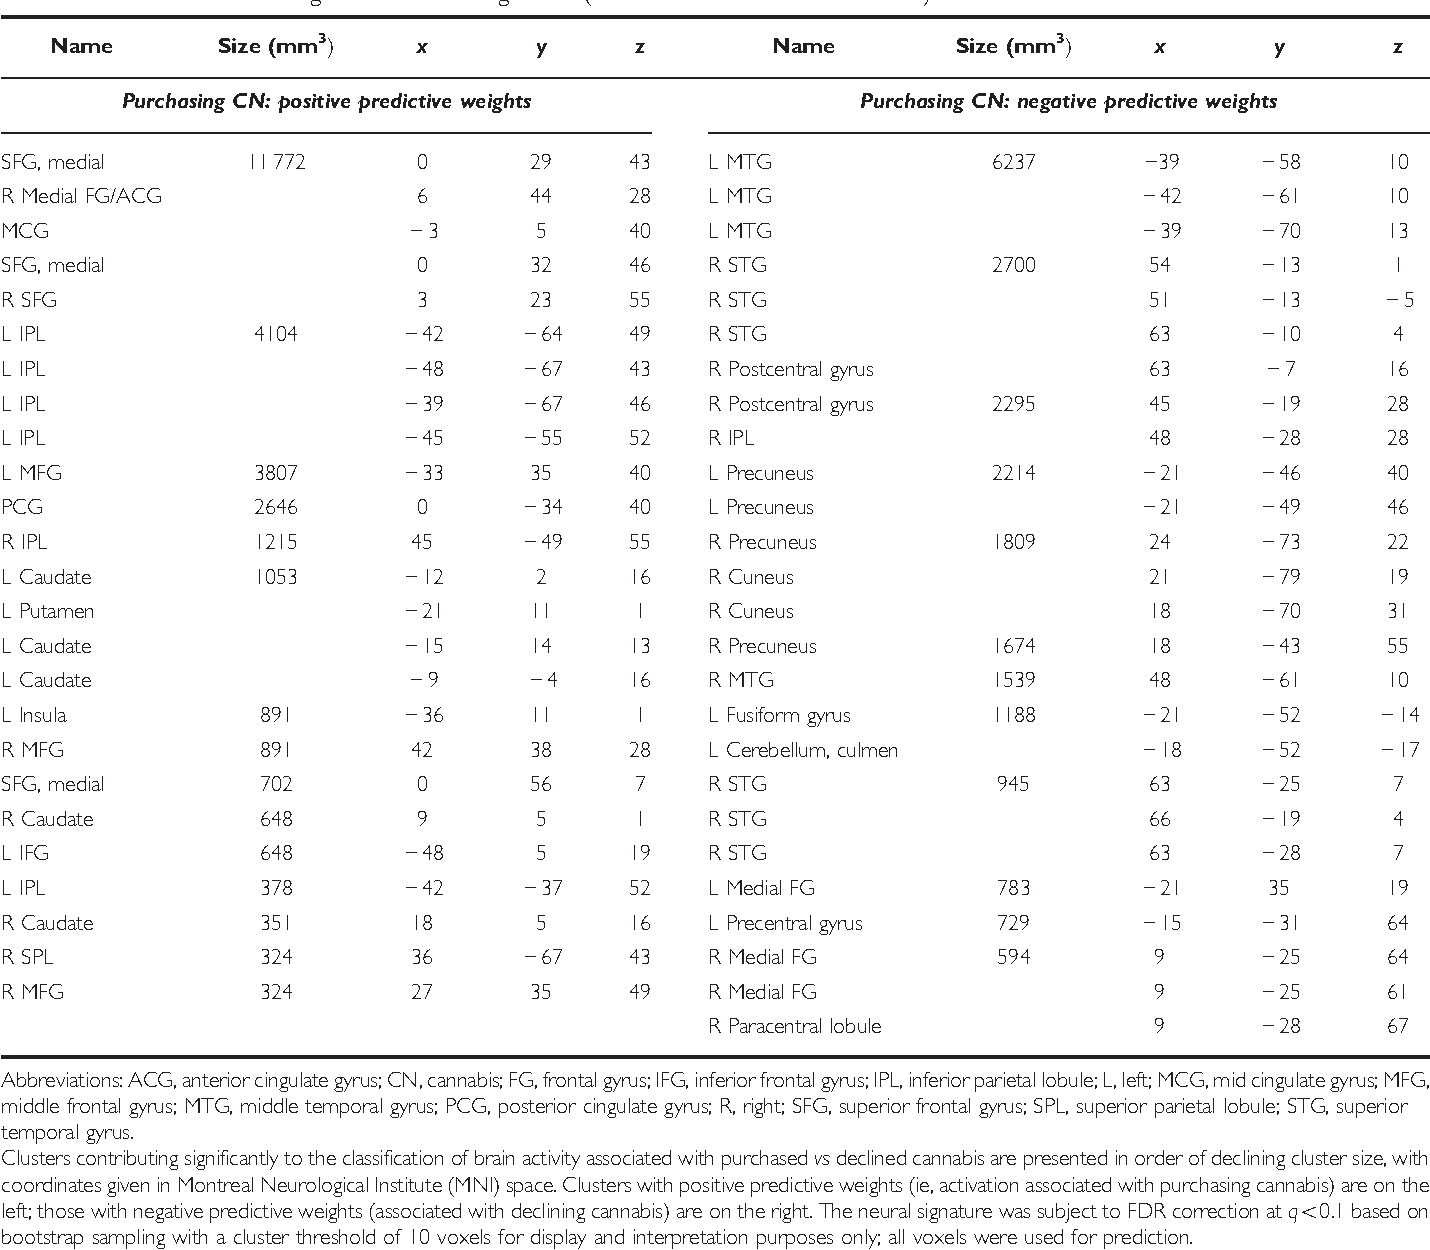 Table 2 Clusters Contributing to the Neural Signature (Purchased vs Declined Cannabis)